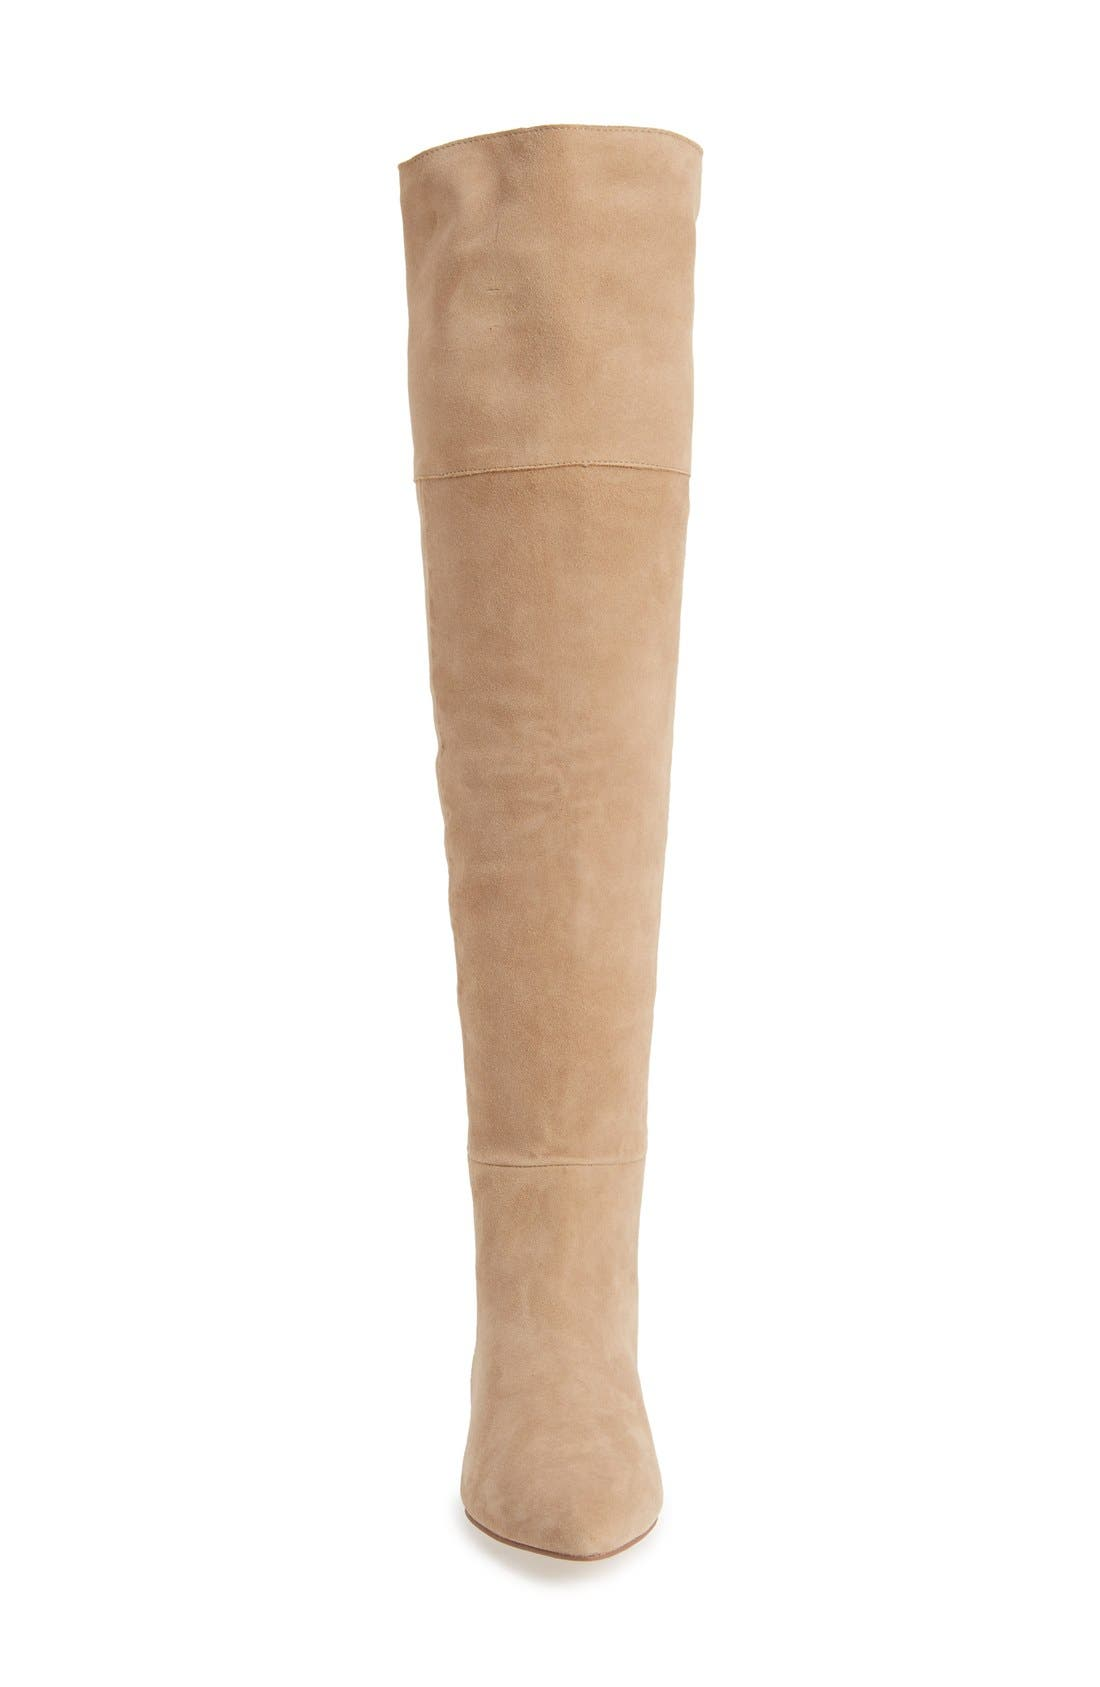 Alternate Image 3  - Kristin Cavallari 'York' Over the Knee Boot (Women)